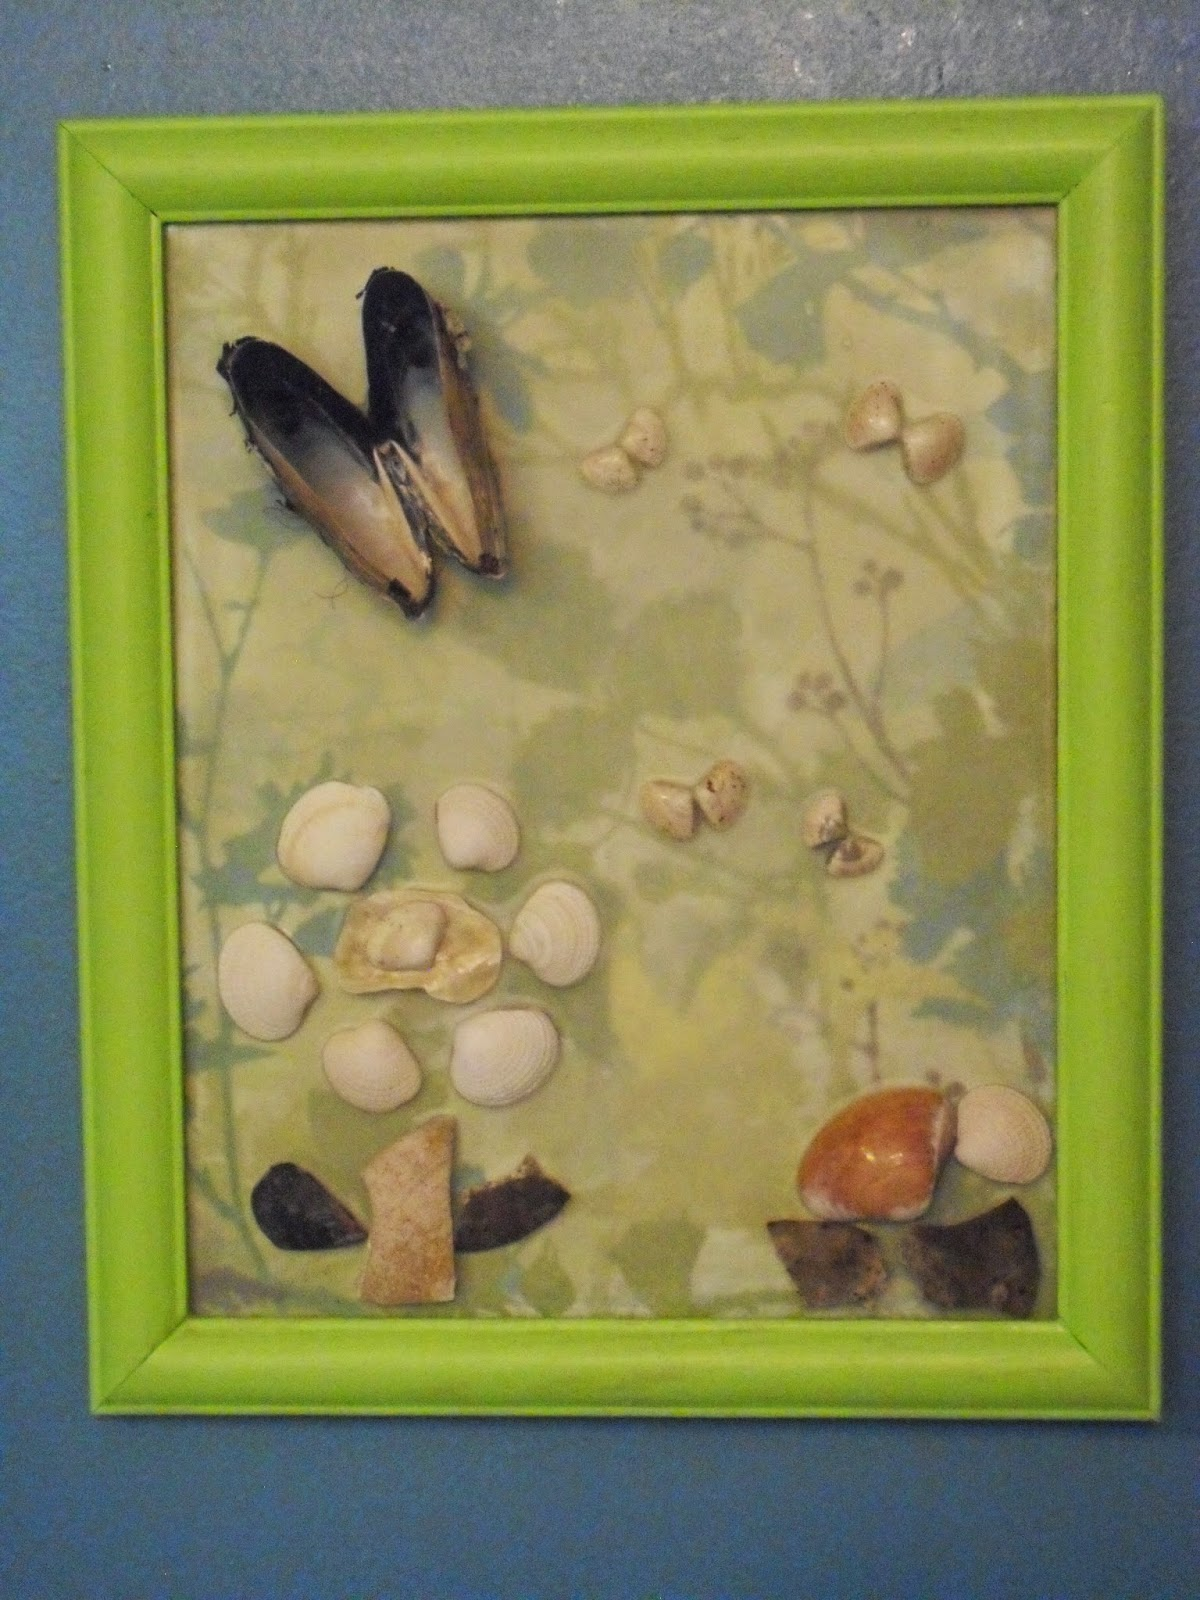 MixingItUp Create Pictures With Sea Shells - Butterfly